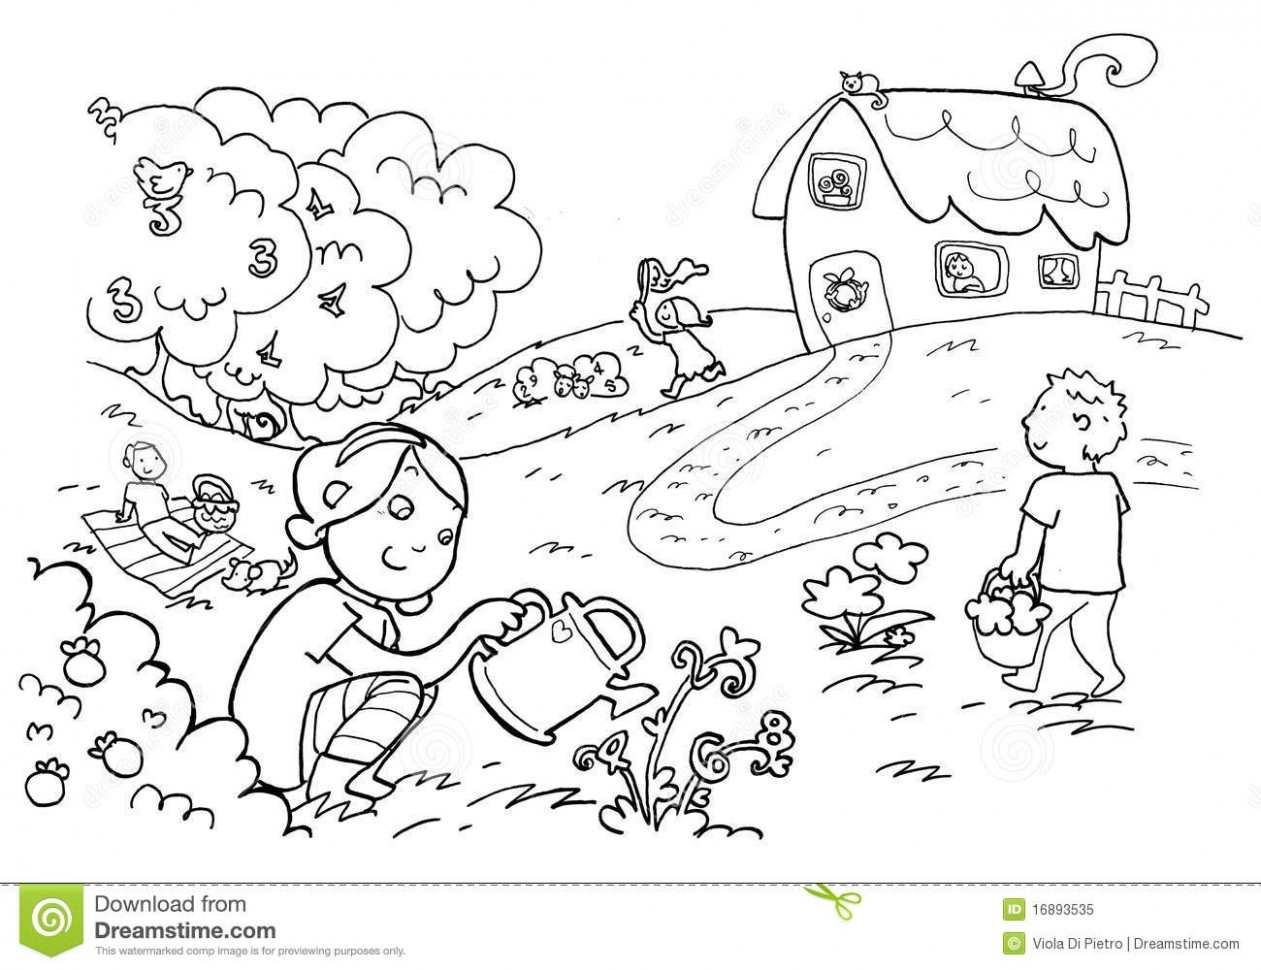 Scenery clipart black and white 6 » Clipart Station.